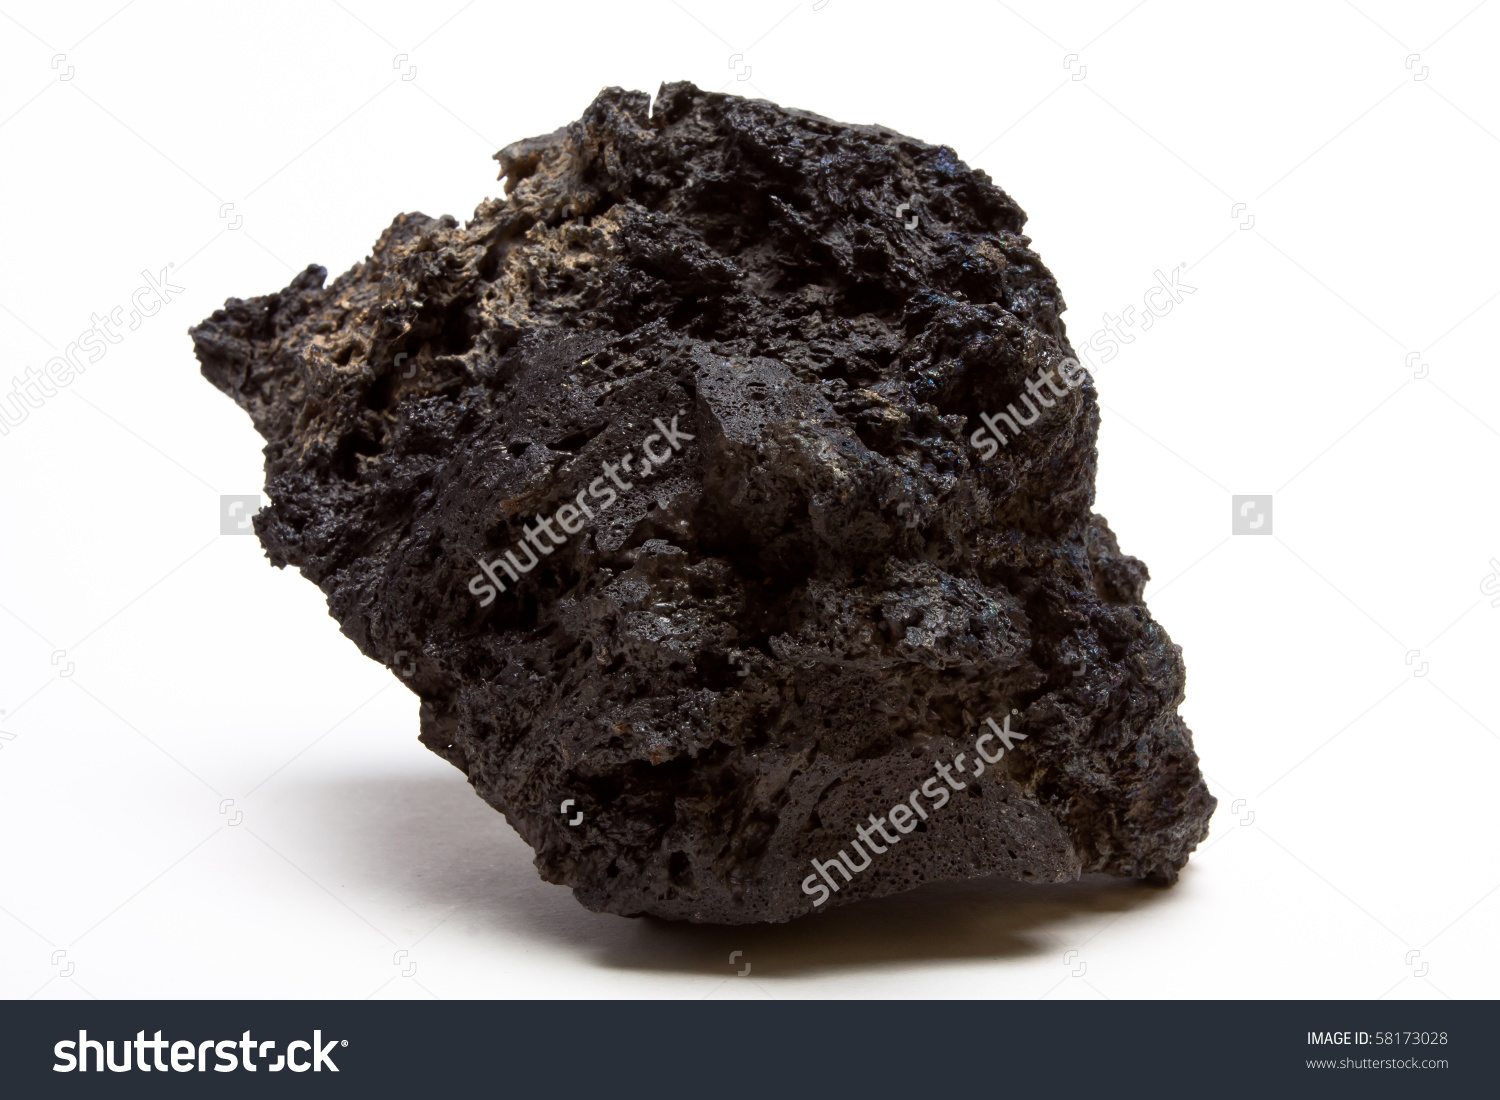 Abstract Chunk Of Lava Rock From Low Perspective Isolated Against.